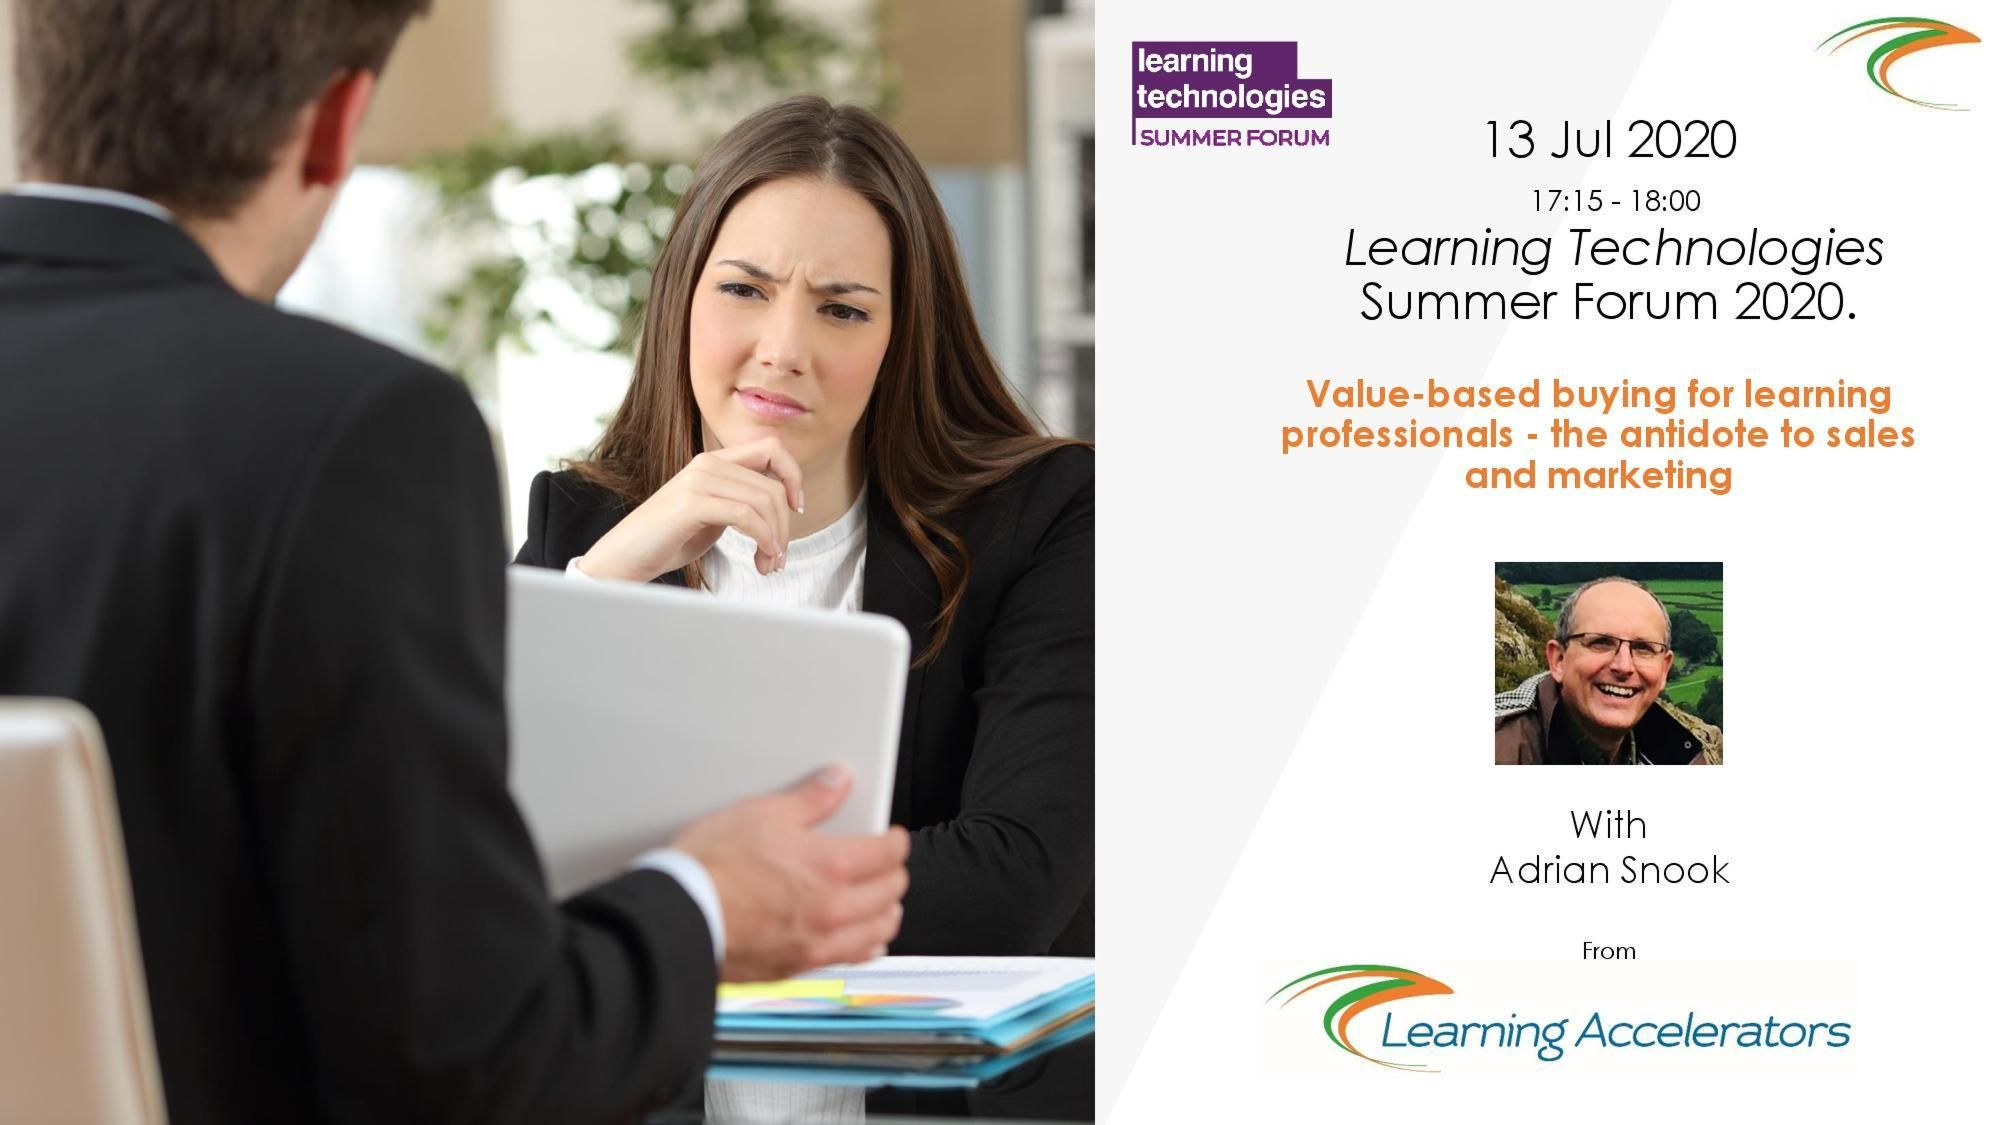 Value-based buying for learning professionals - the antidote to sales and marketing